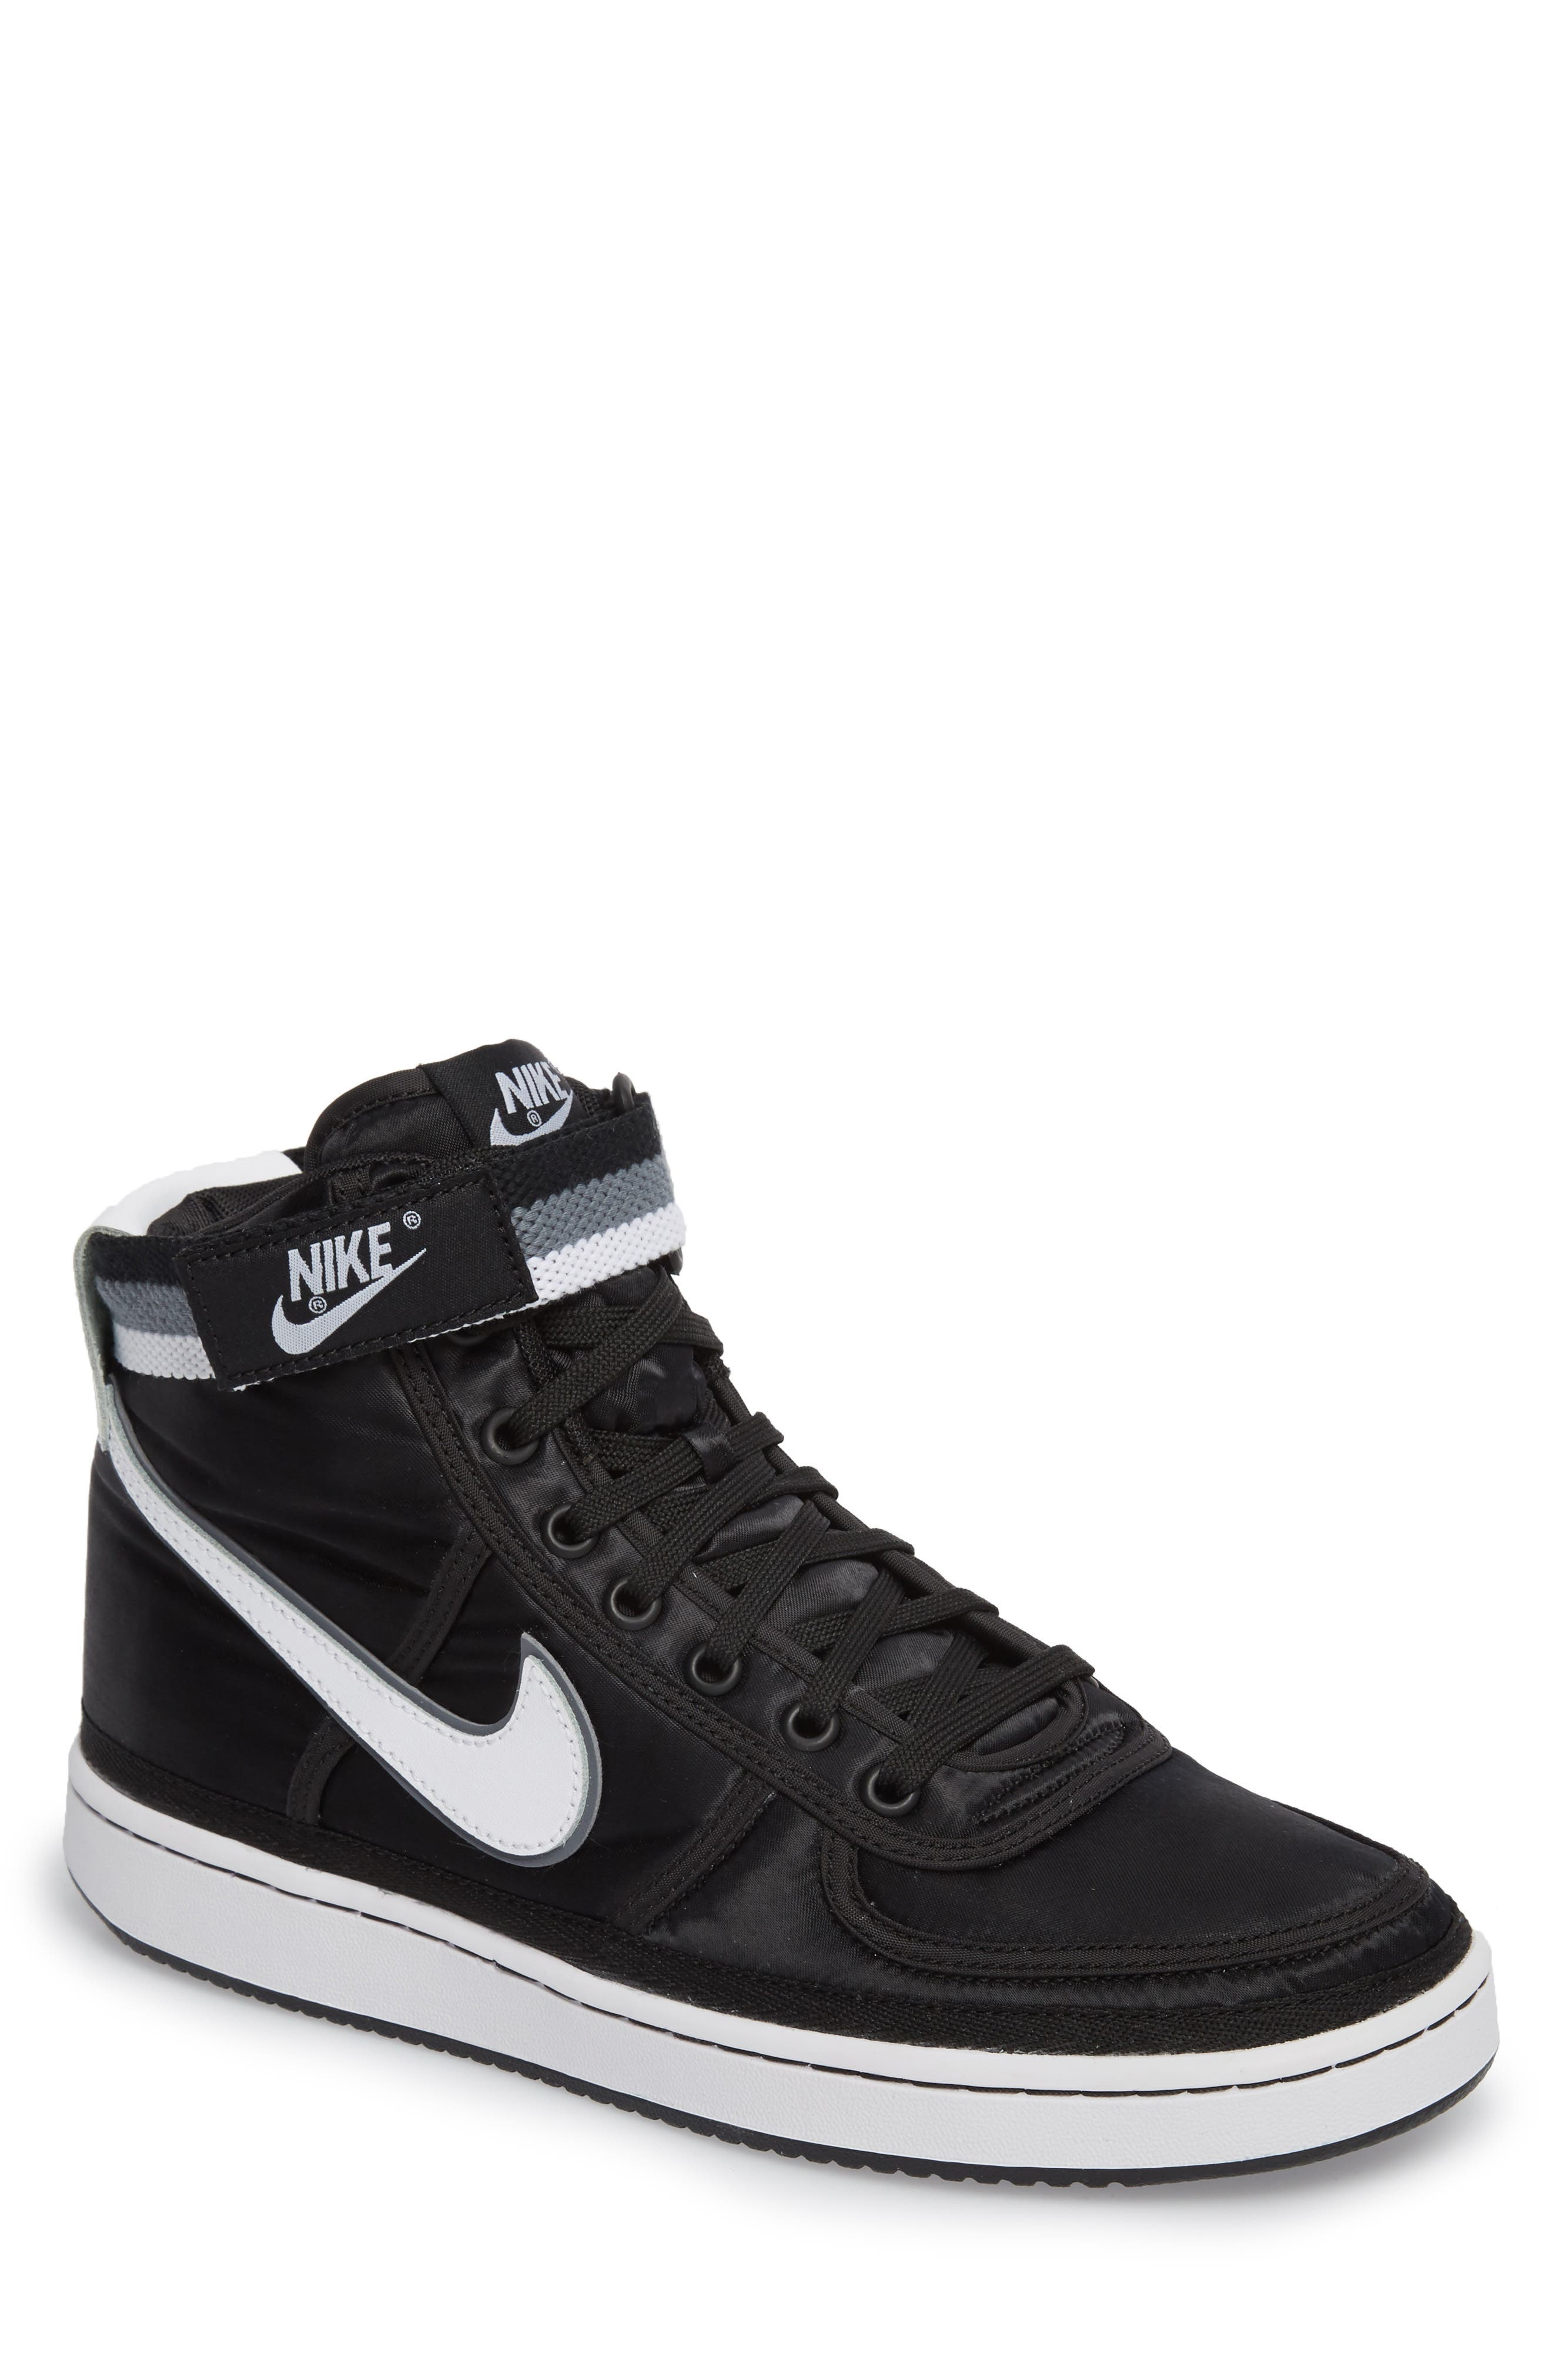 NIKE,                             Vandal High Supreme High Top Sneaker,                             Main thumbnail 1, color,                             001